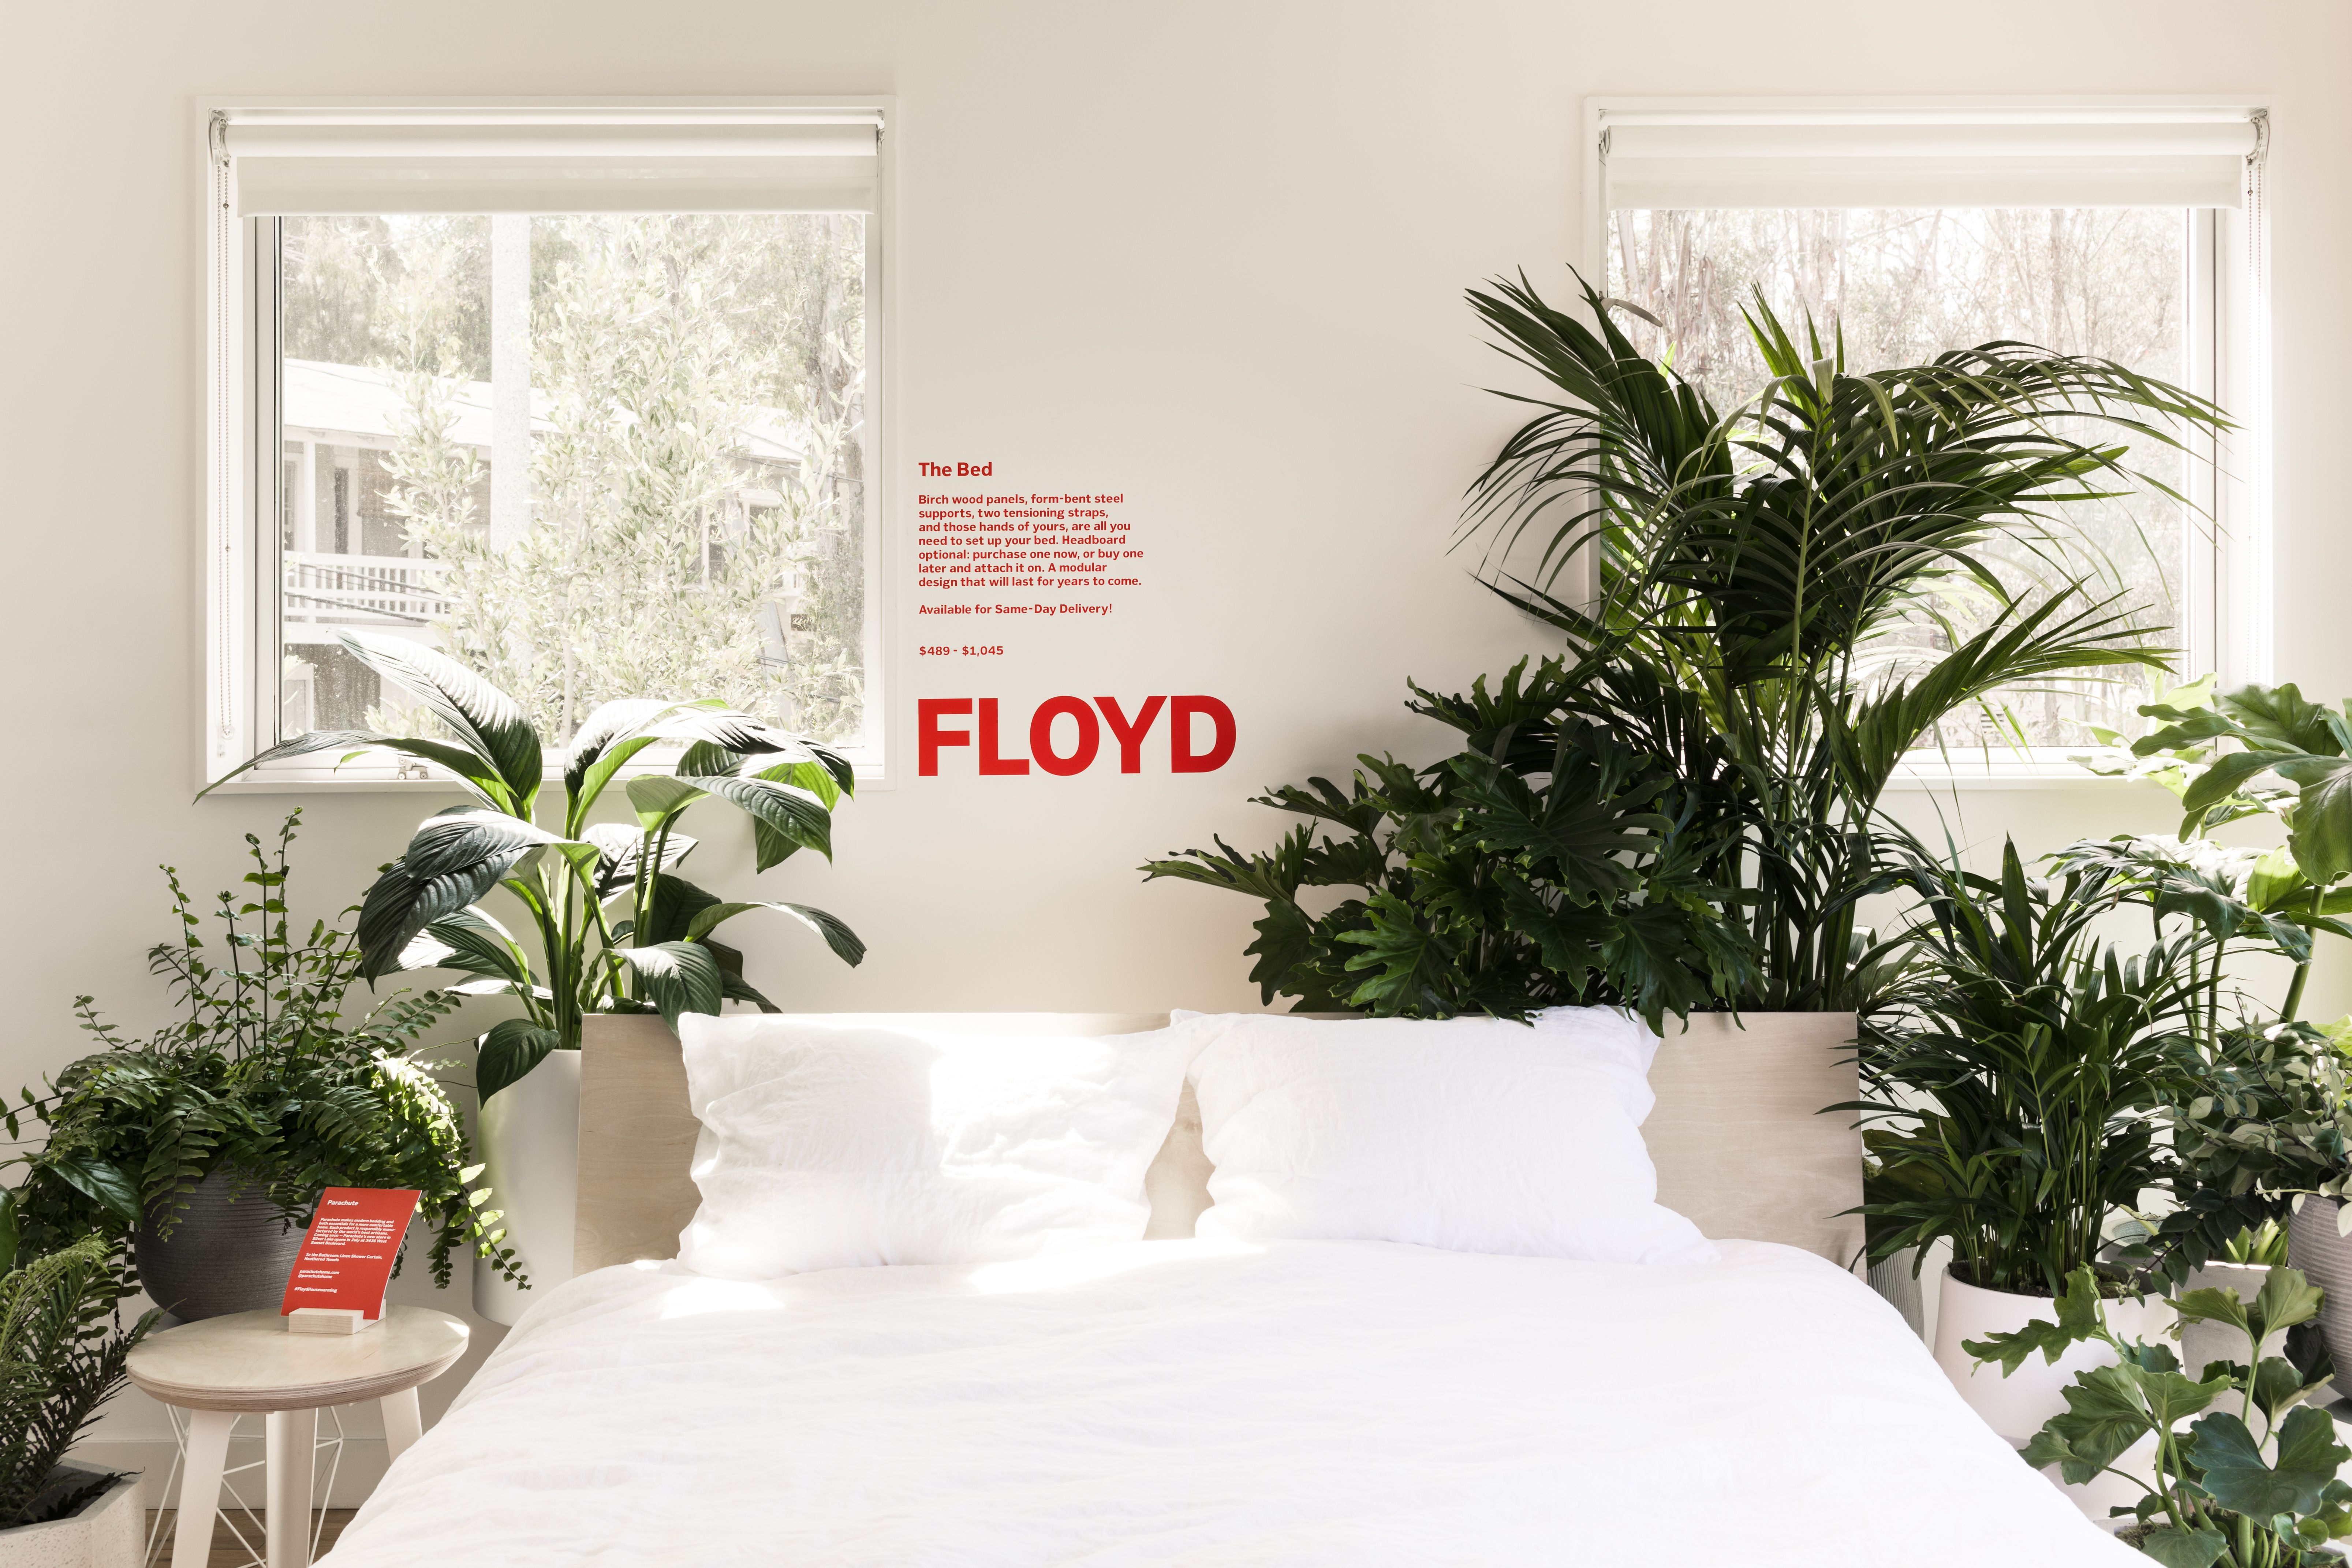 Made in America Furniture Retailer Floyd's Popup Shop Is